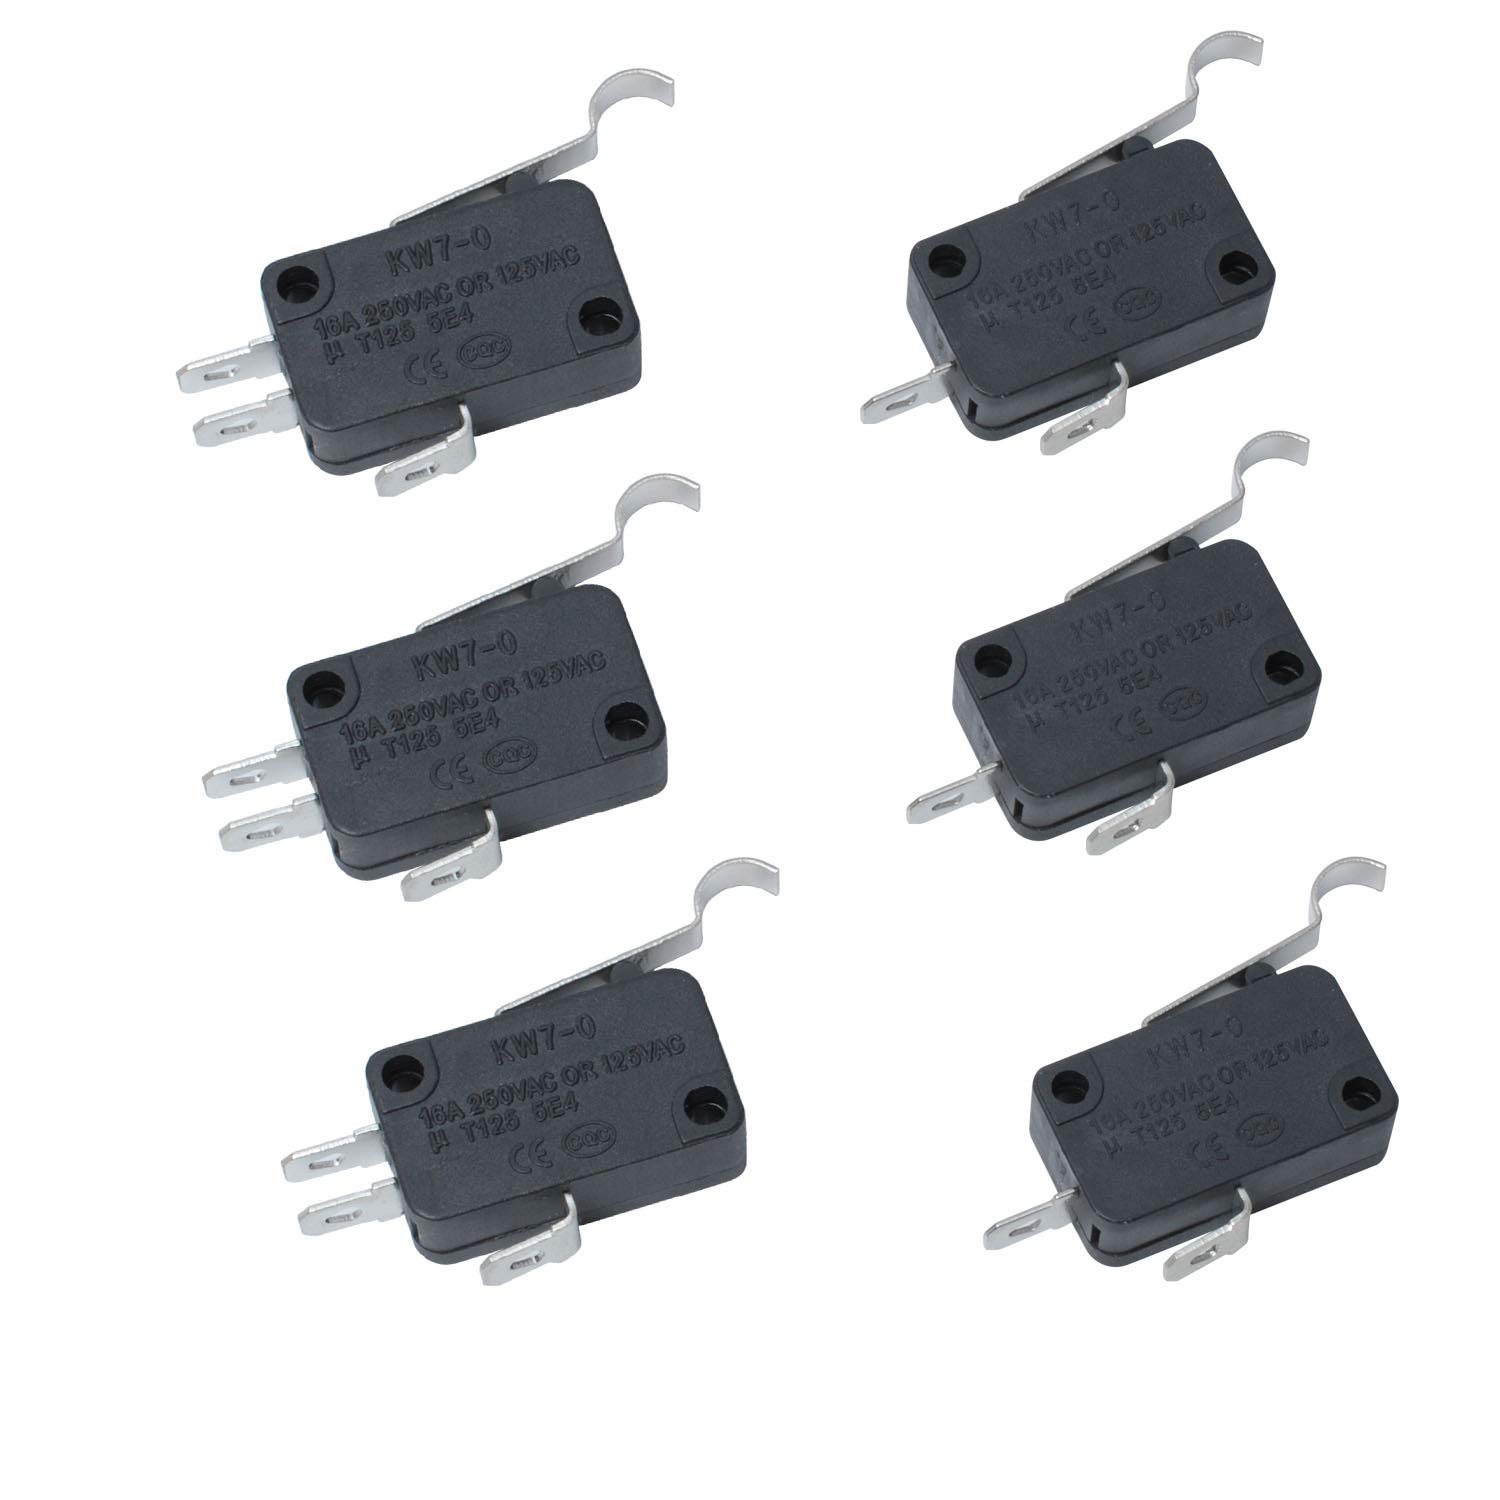 1014807 1014808 Micro Switch for Car Max 74% OFF Compatible with Max 60% OFF Golf Club